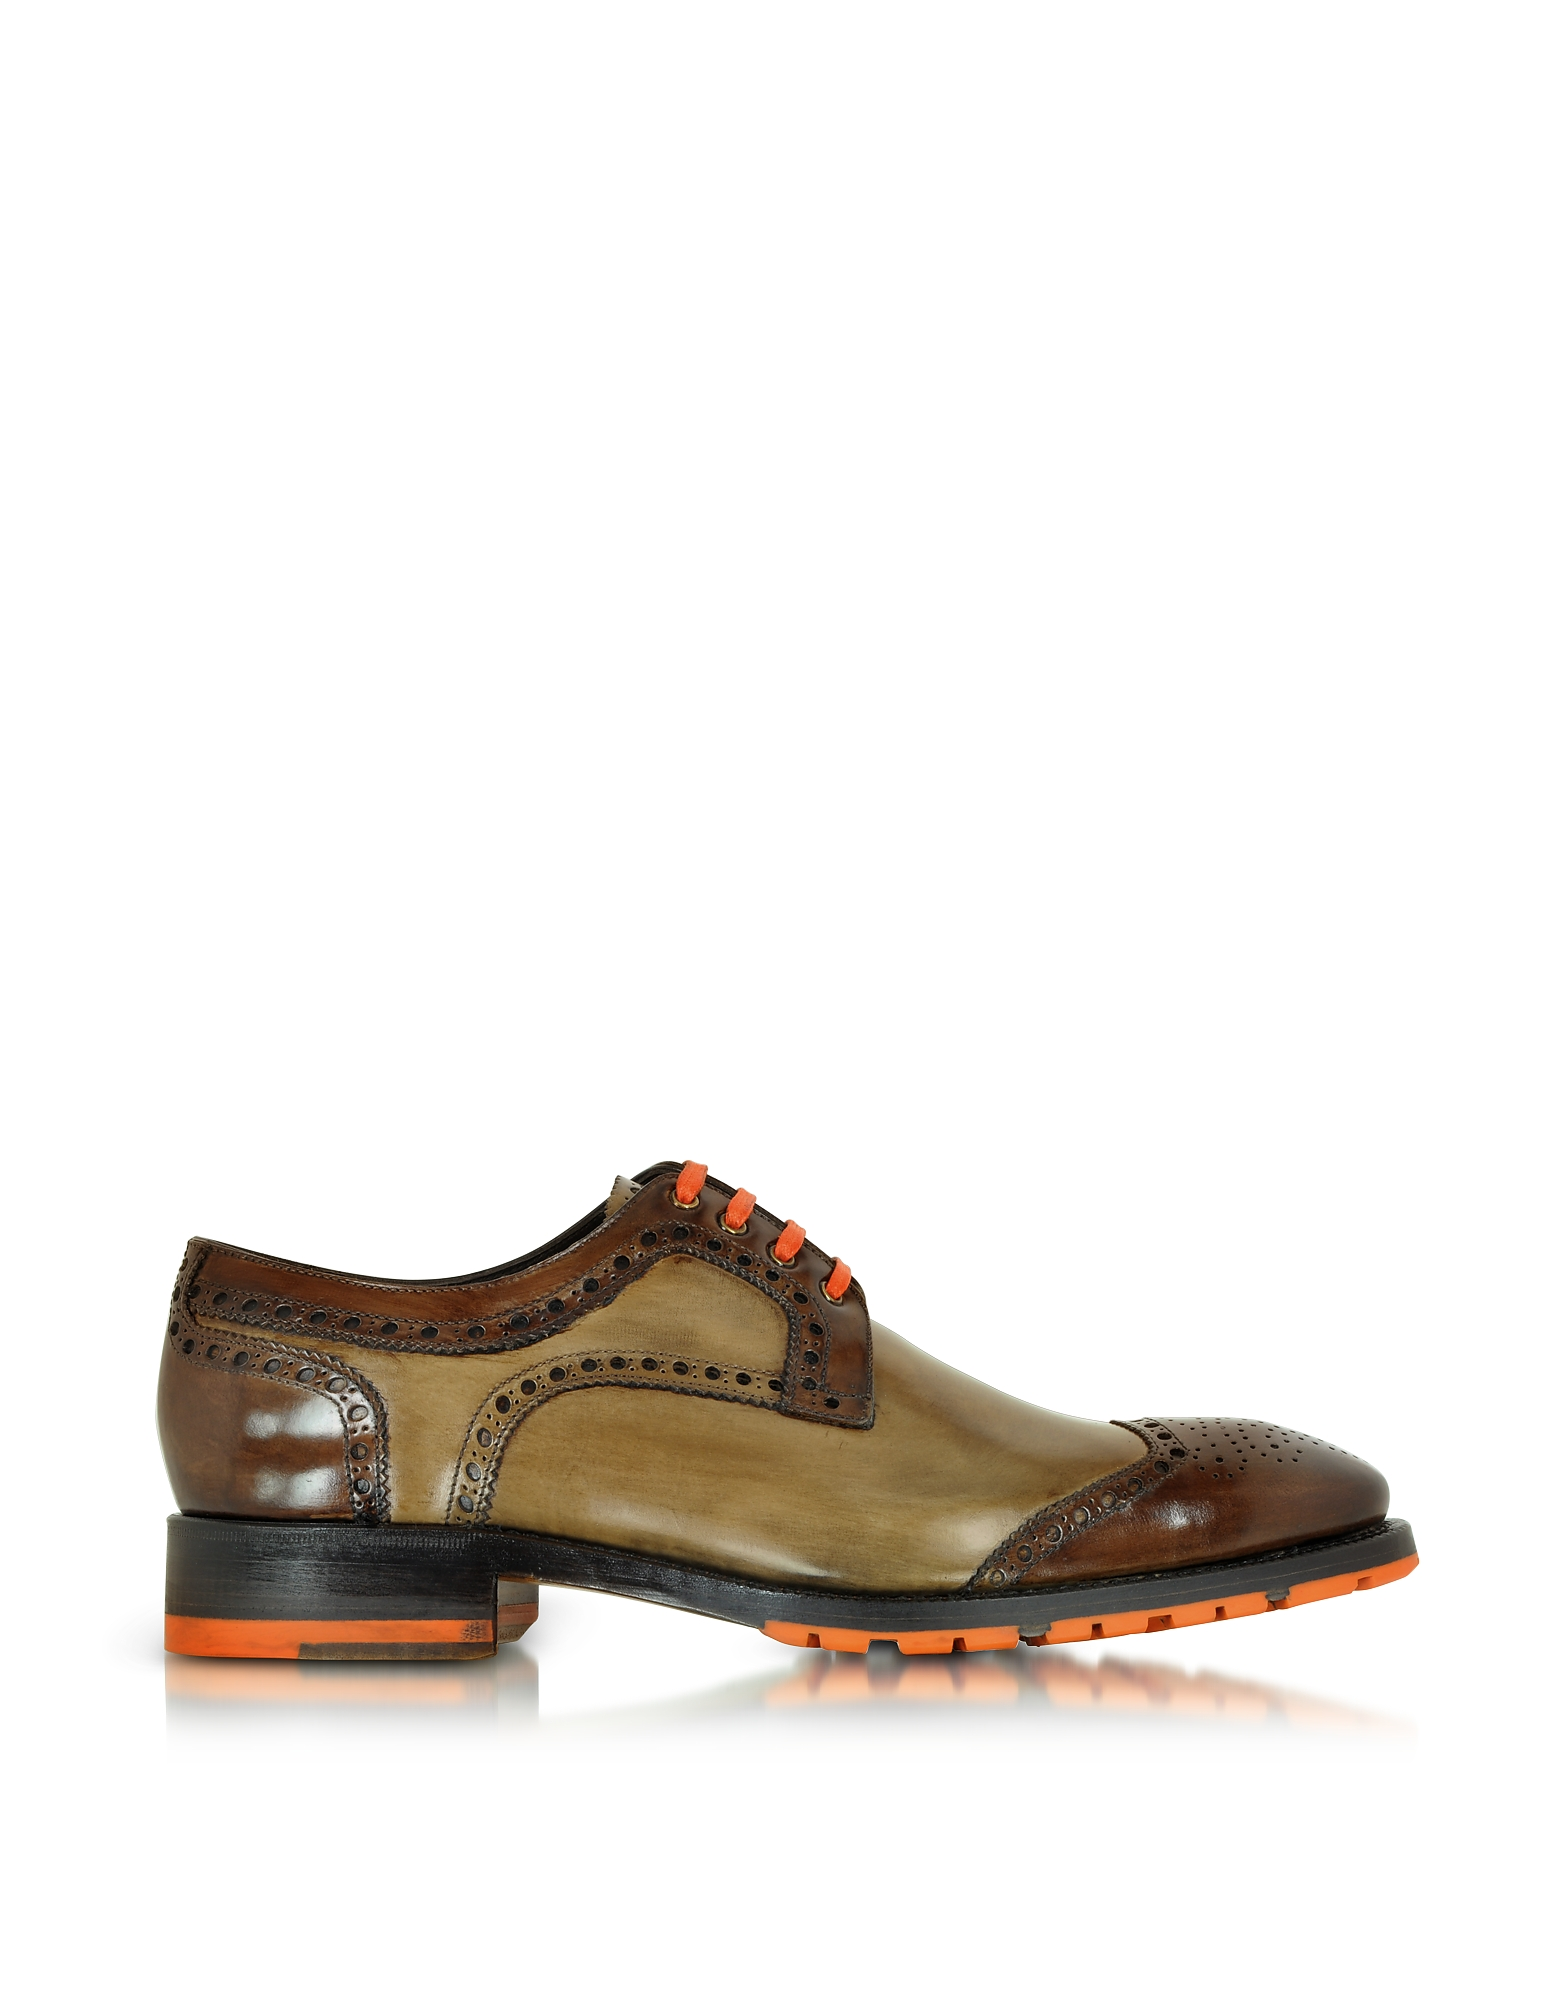 Forzieri Shoes, Italian Handcrafted Chestnut and Light Brown Leather Oxford Shoe